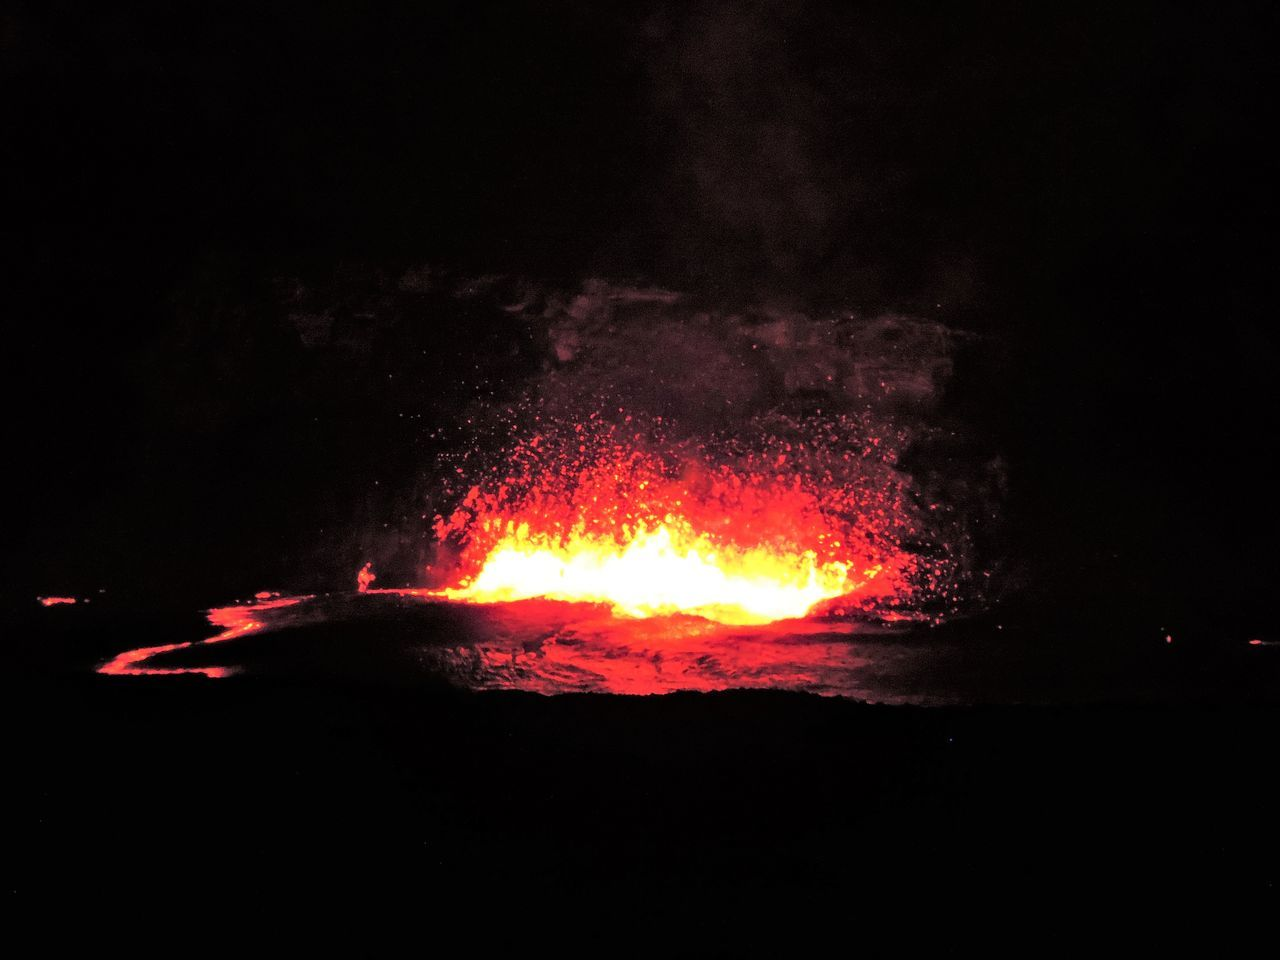 night, heat - temperature, glowing, outdoors, lava, burning, flame, no people, molten, nature, bonfire, sky